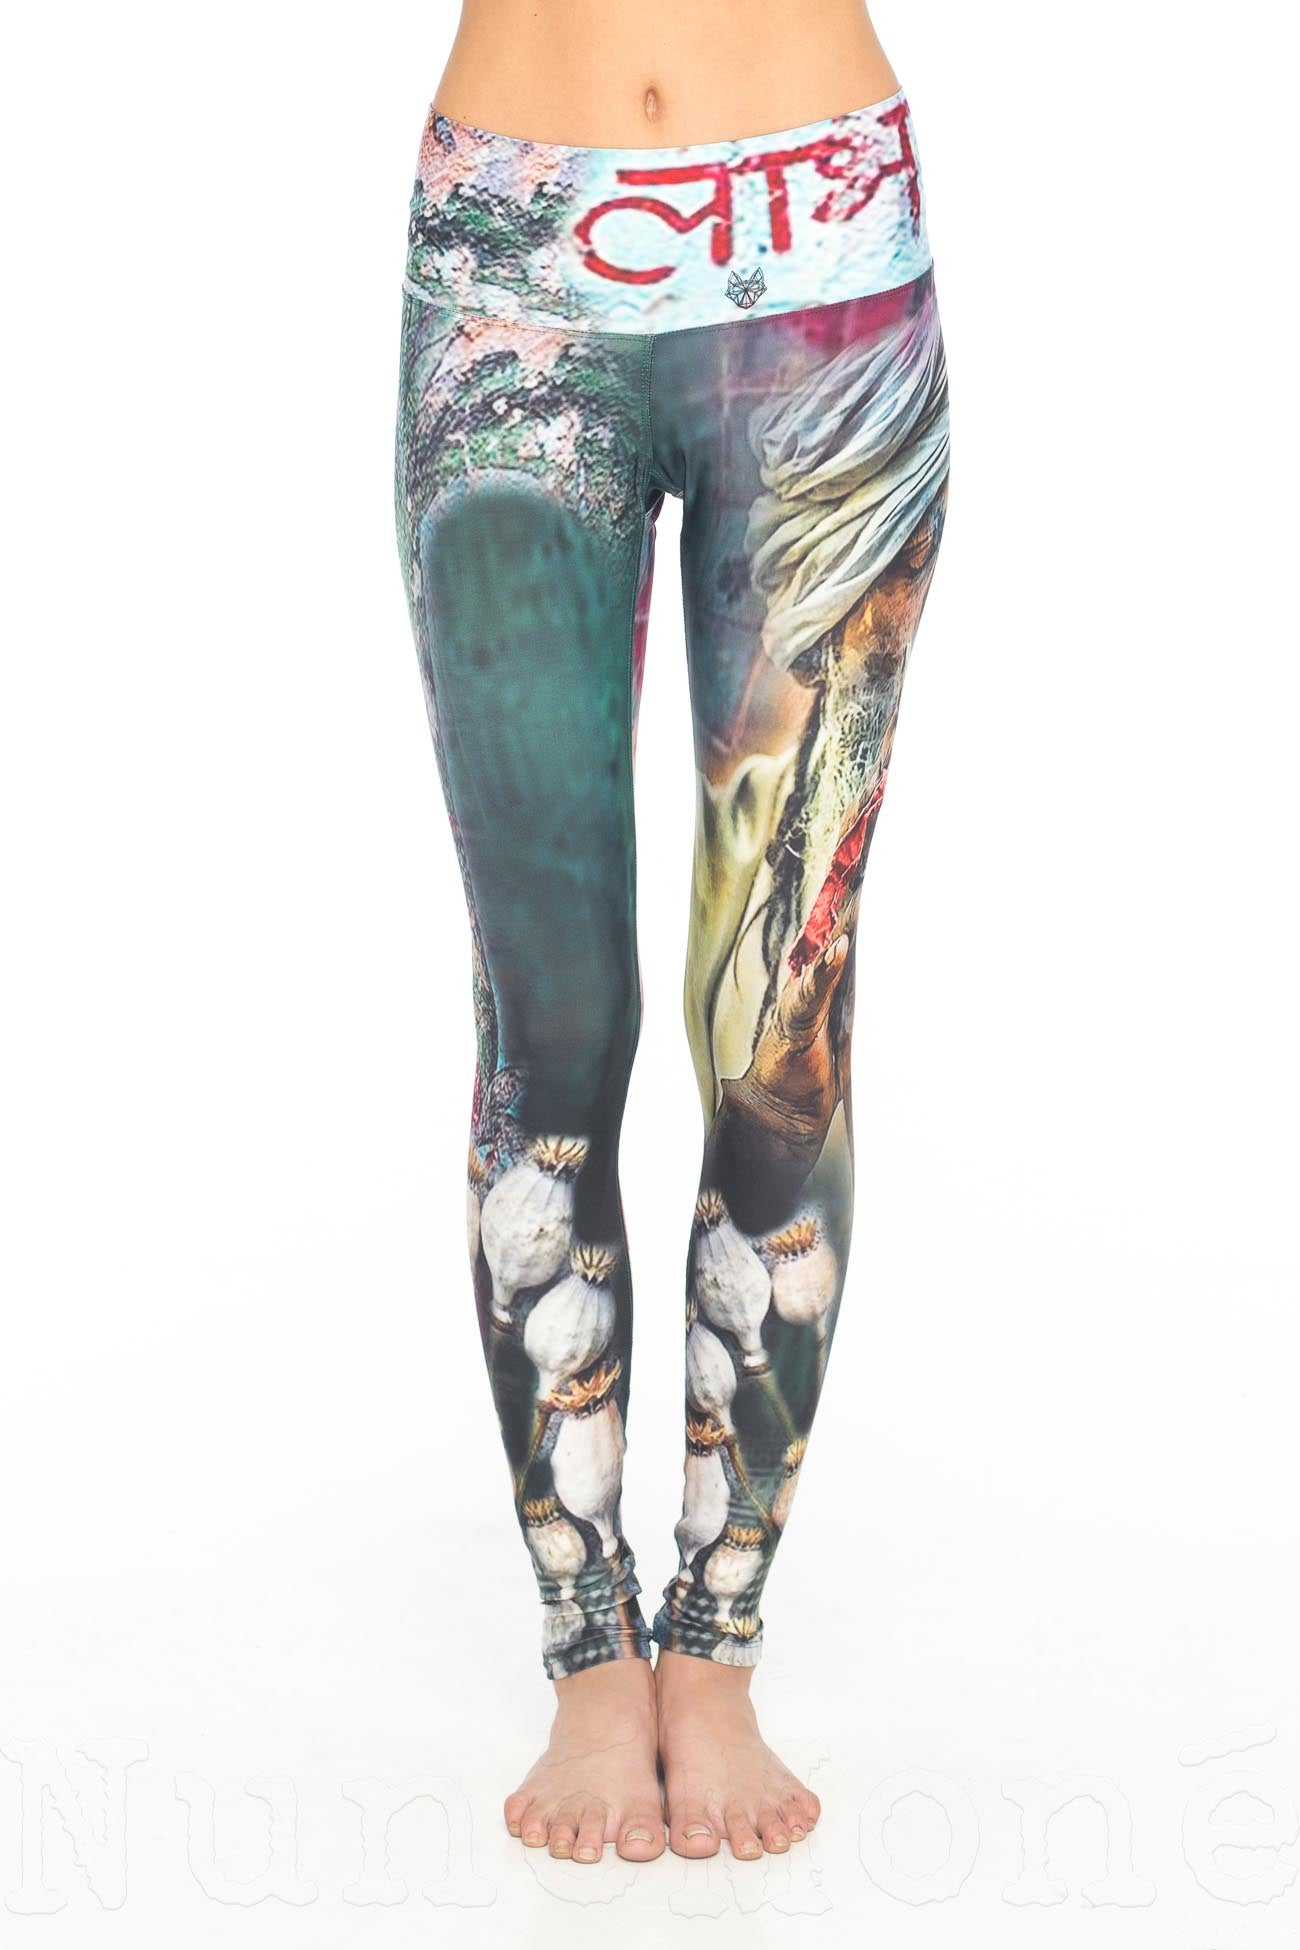 image_parvati_leggings_1